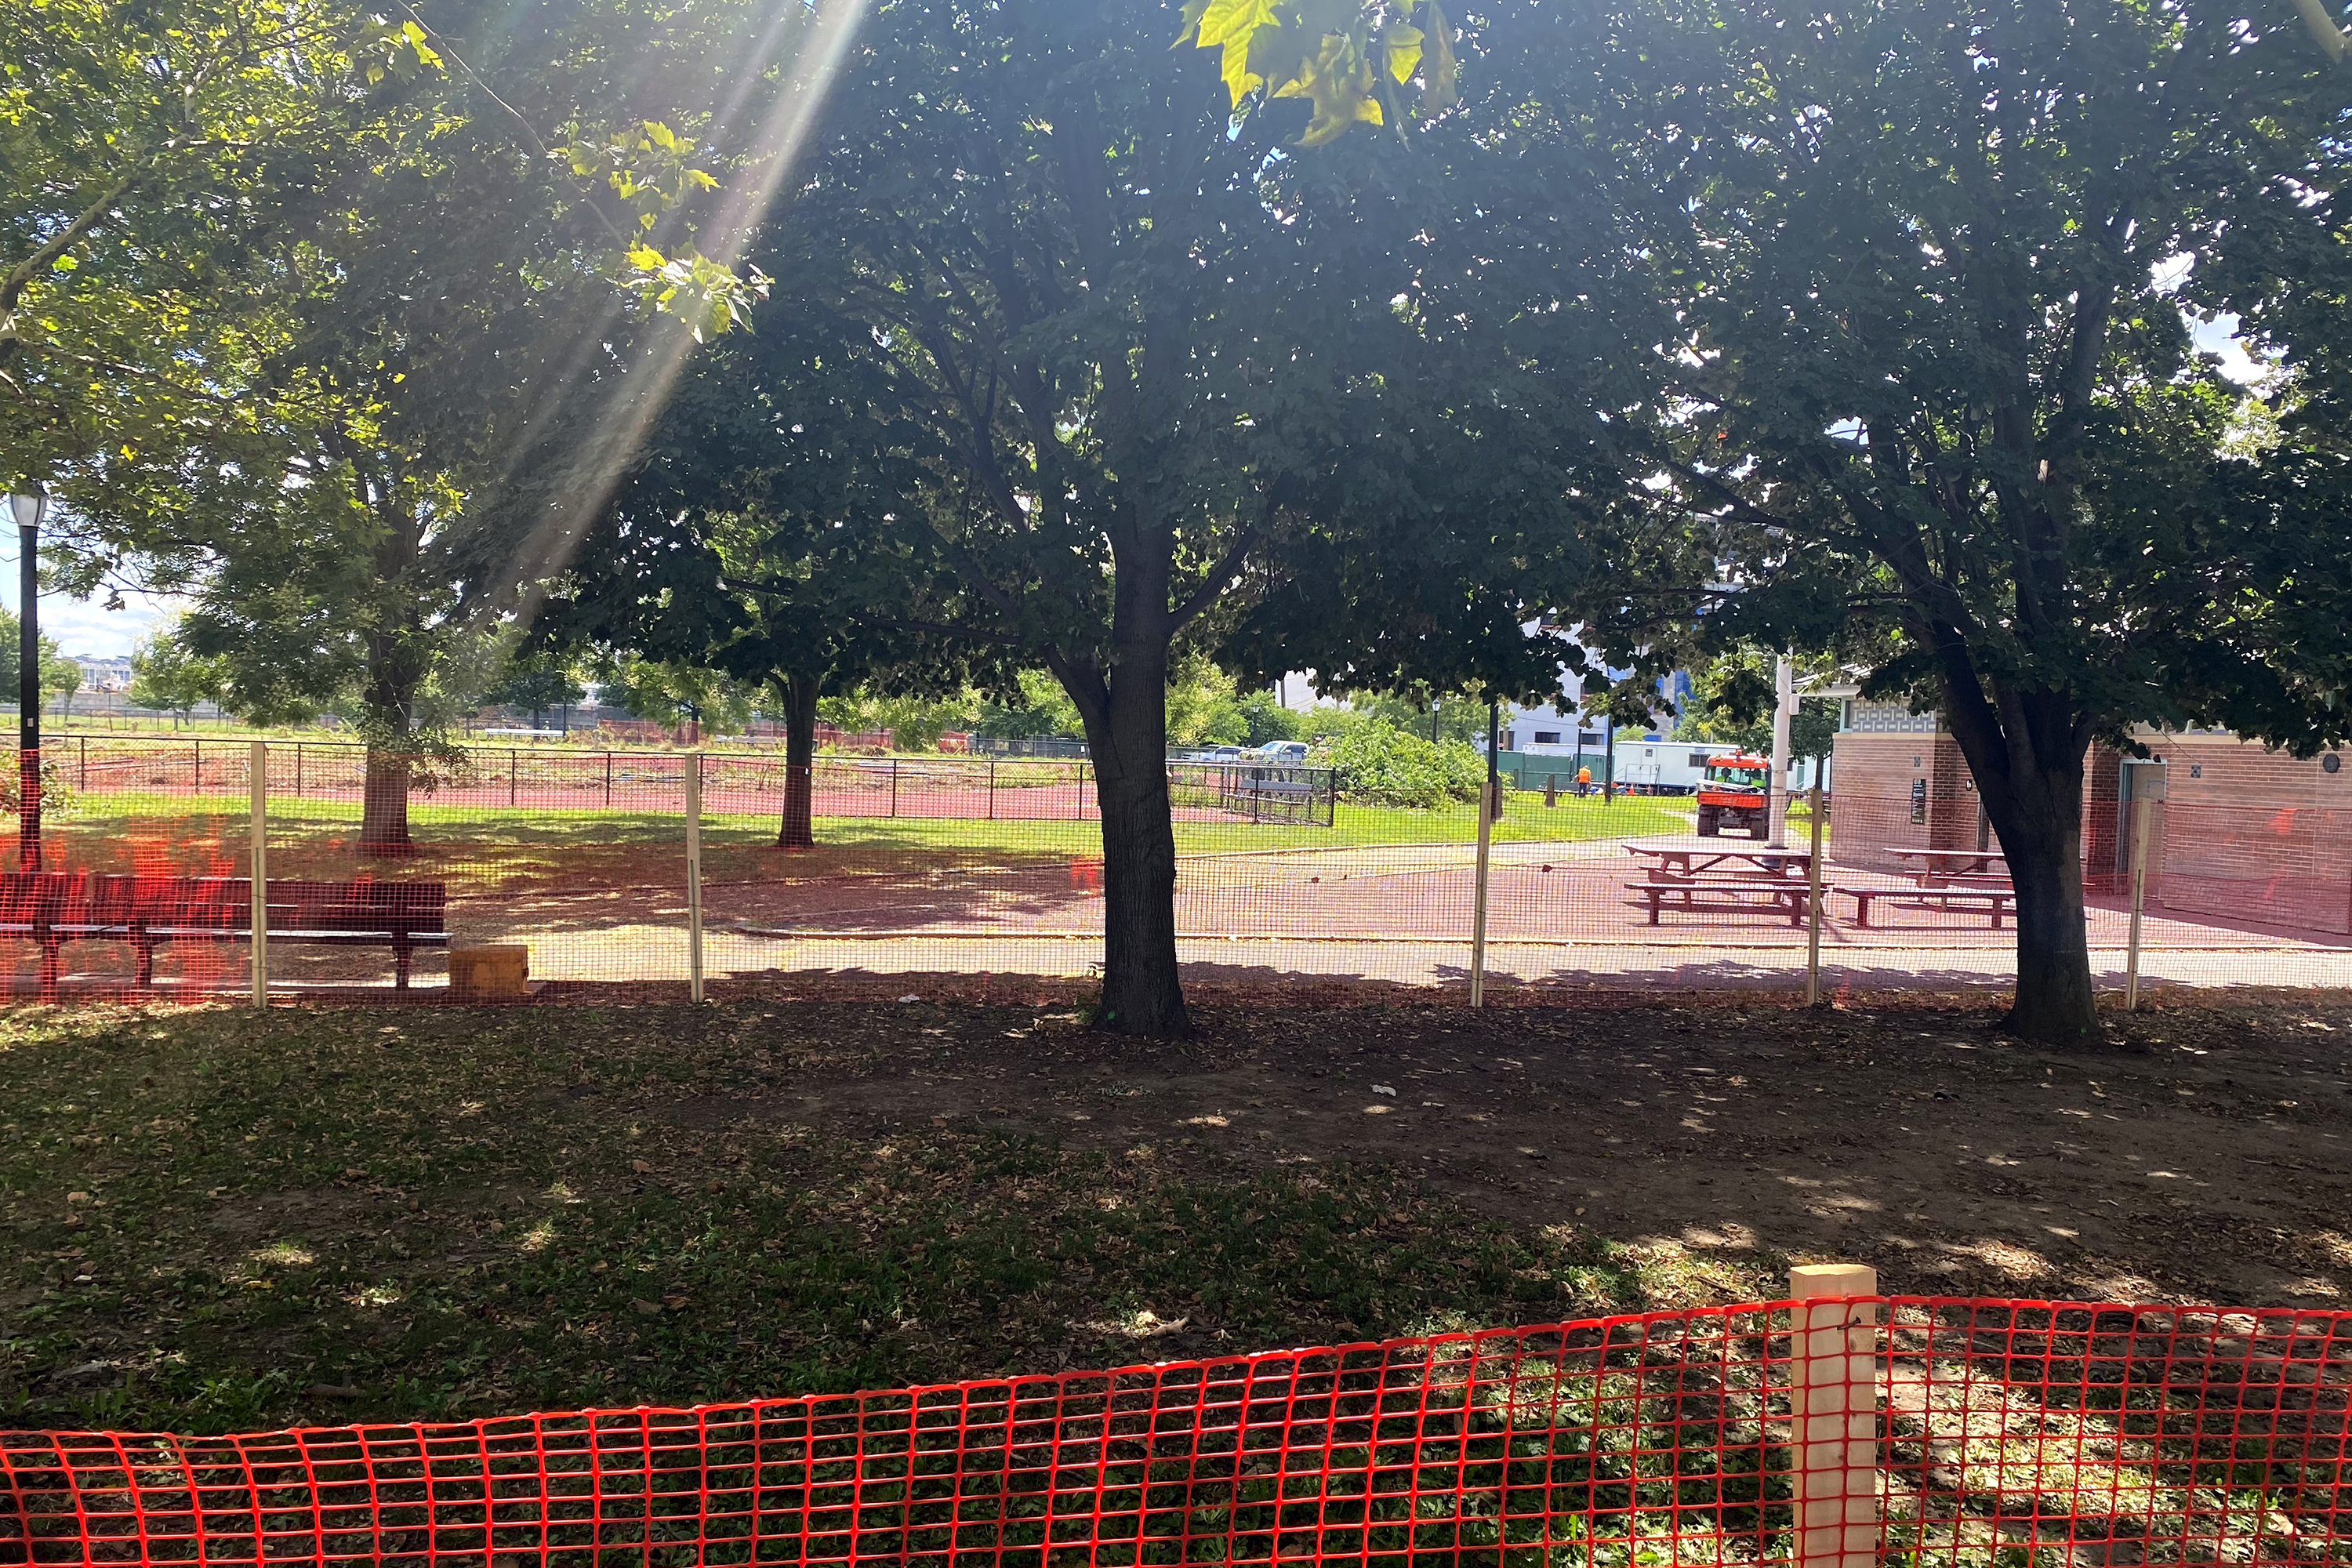 Barriers blocking Red Hood residents from recreation.